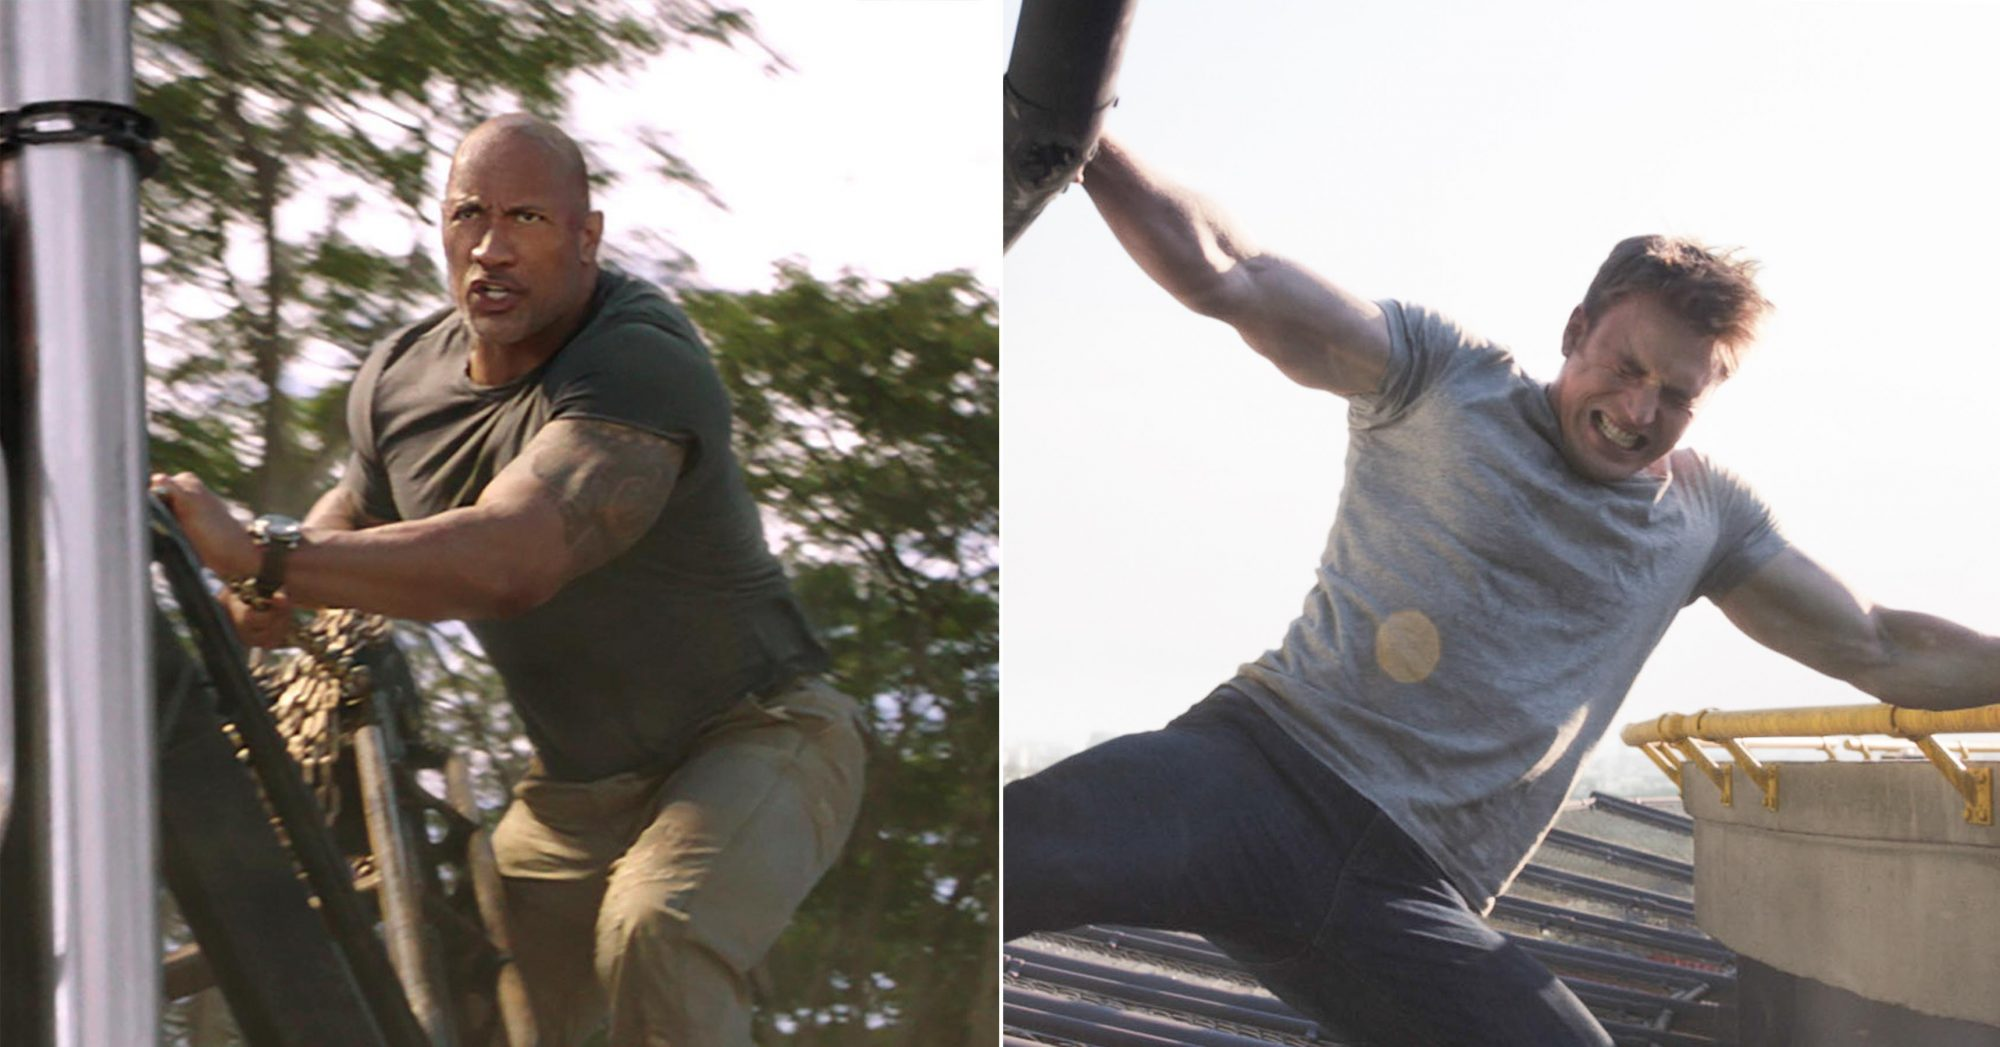 "Luke Hobbs (Dwayne Johnson) in ""Fast & Furious Presents: Hobbs & Shaw,"" directed by David Leitch. Photo Credit: Universal Pictures CAPTAIN AMERICA: CIVIL WAR, Chris Evans, 2016. ph: Zade Rosenthal / © Walt Disney Studios Motion Pictures / Courtesy Everett Collection"